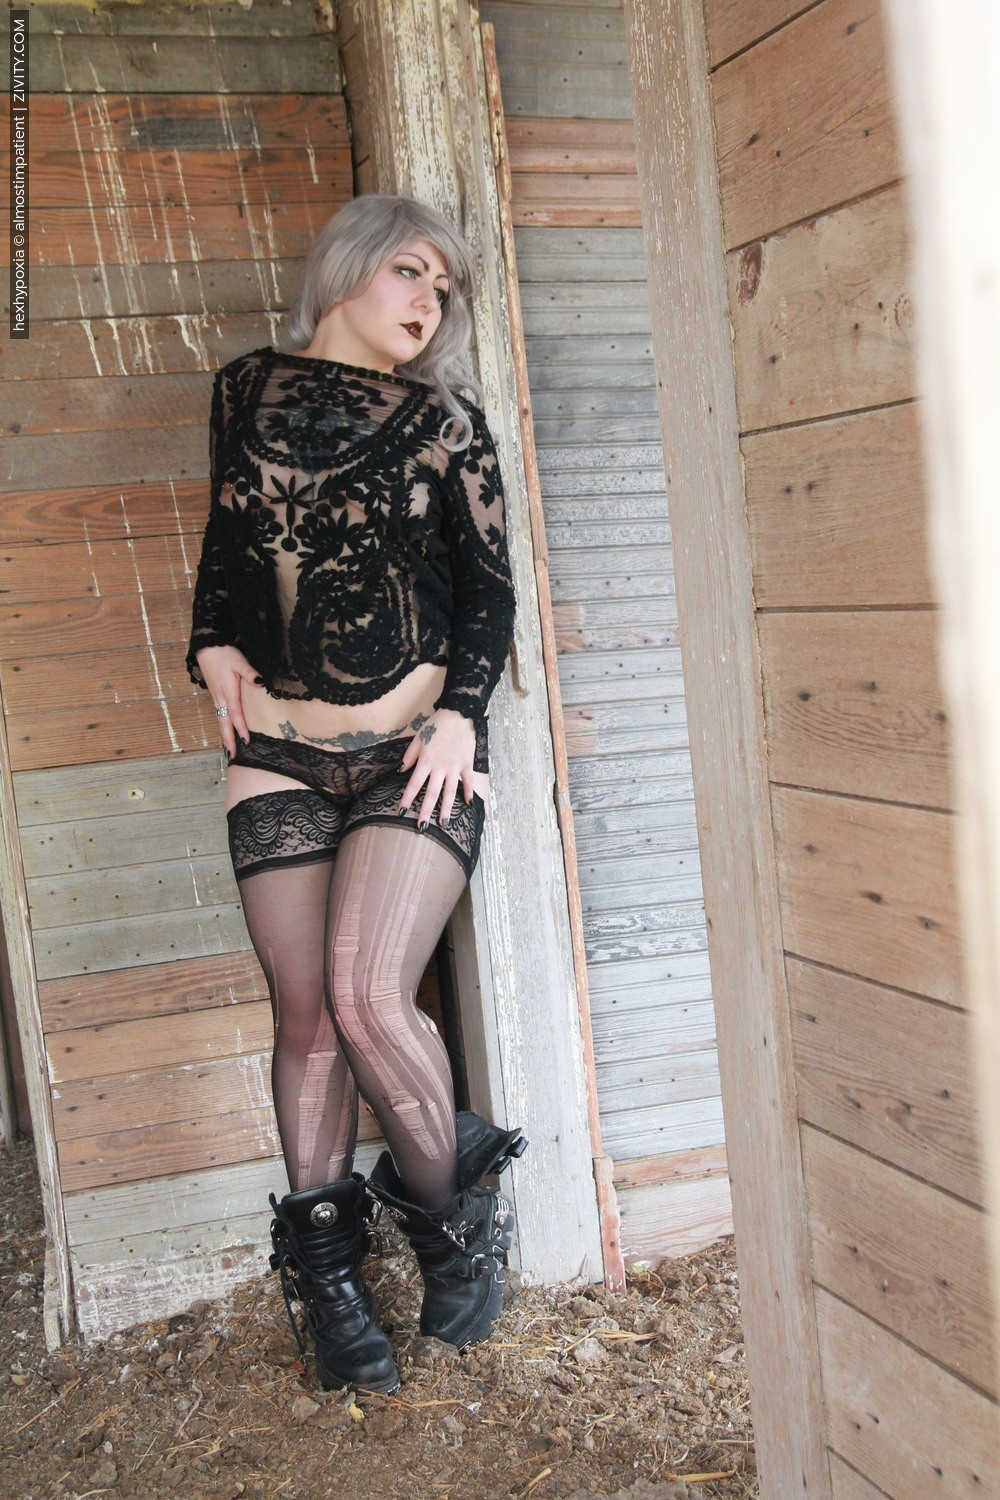 escort service in new york city #Hexhypoxia #goth #gothic #greyhair #sheer #thighs #boots #newrock #seethru #LacePanties #LacePanties #chubby #pierced #tattooed